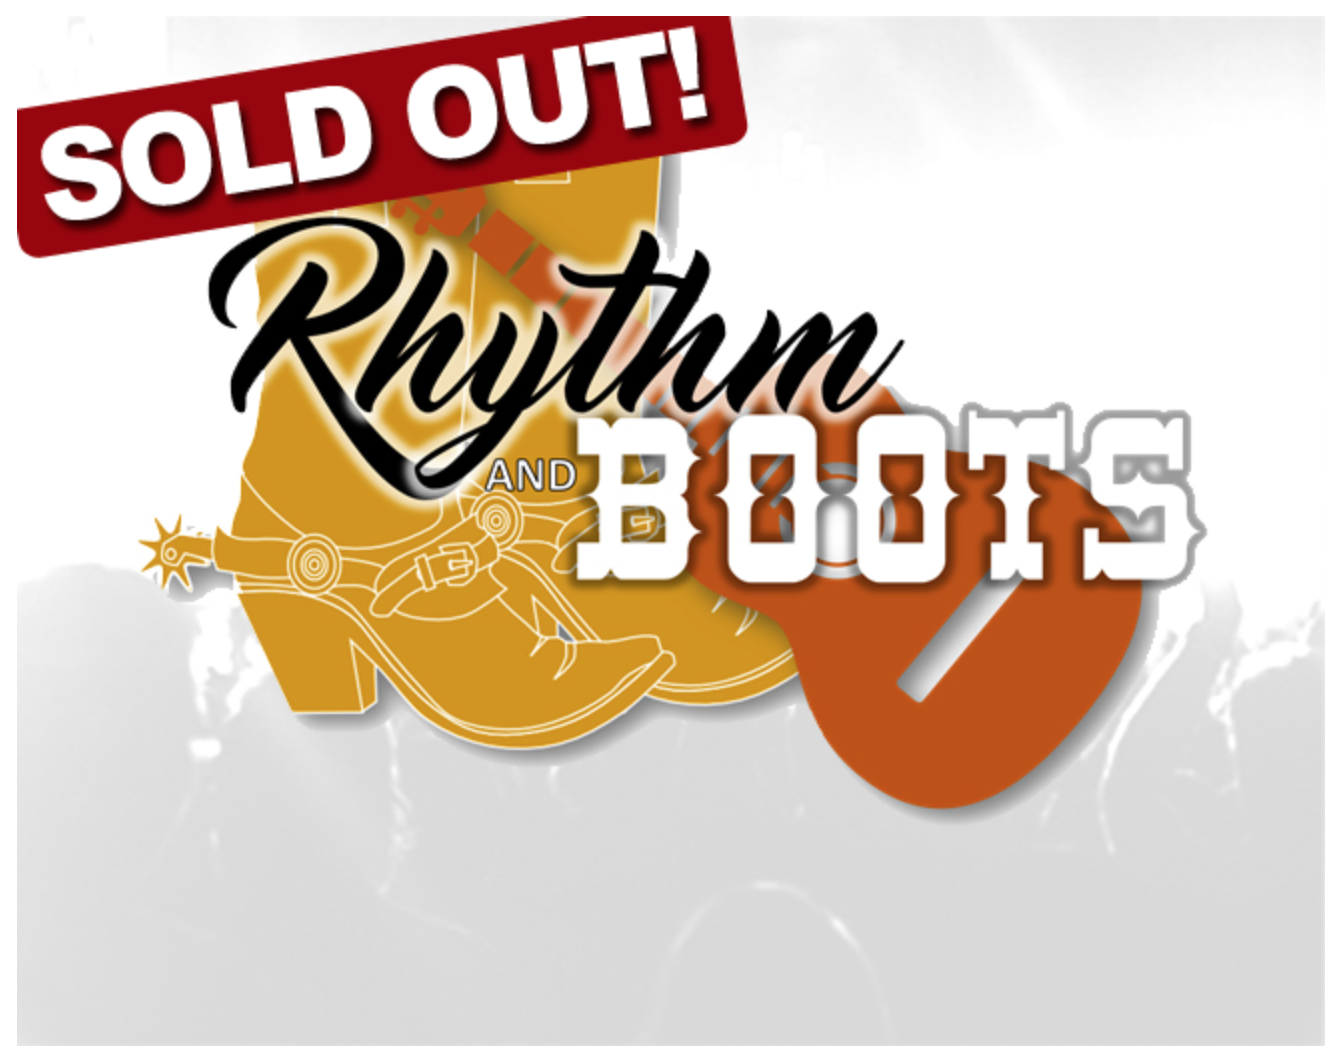 Rhythm & Boots Sam Hunt Show is SOLD OUT!